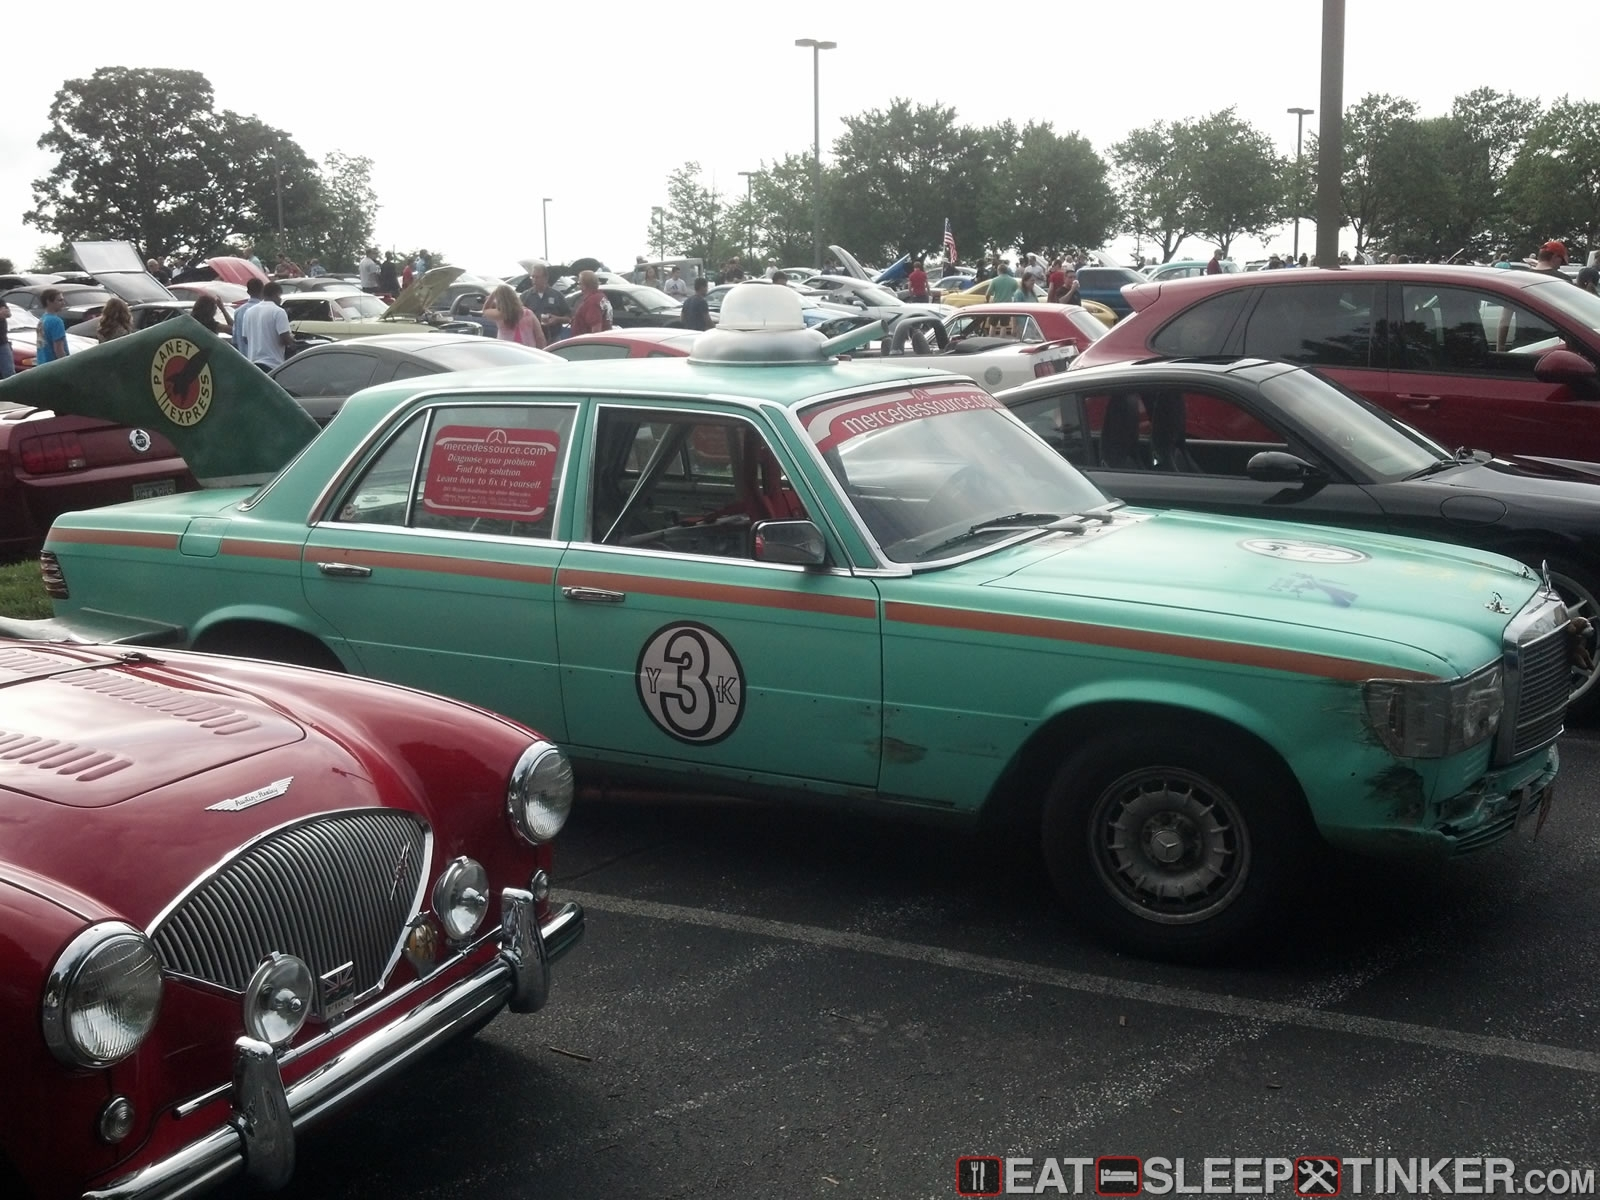 Eat Sleep Tinker Cars And Coffee Of The Upstate June 14